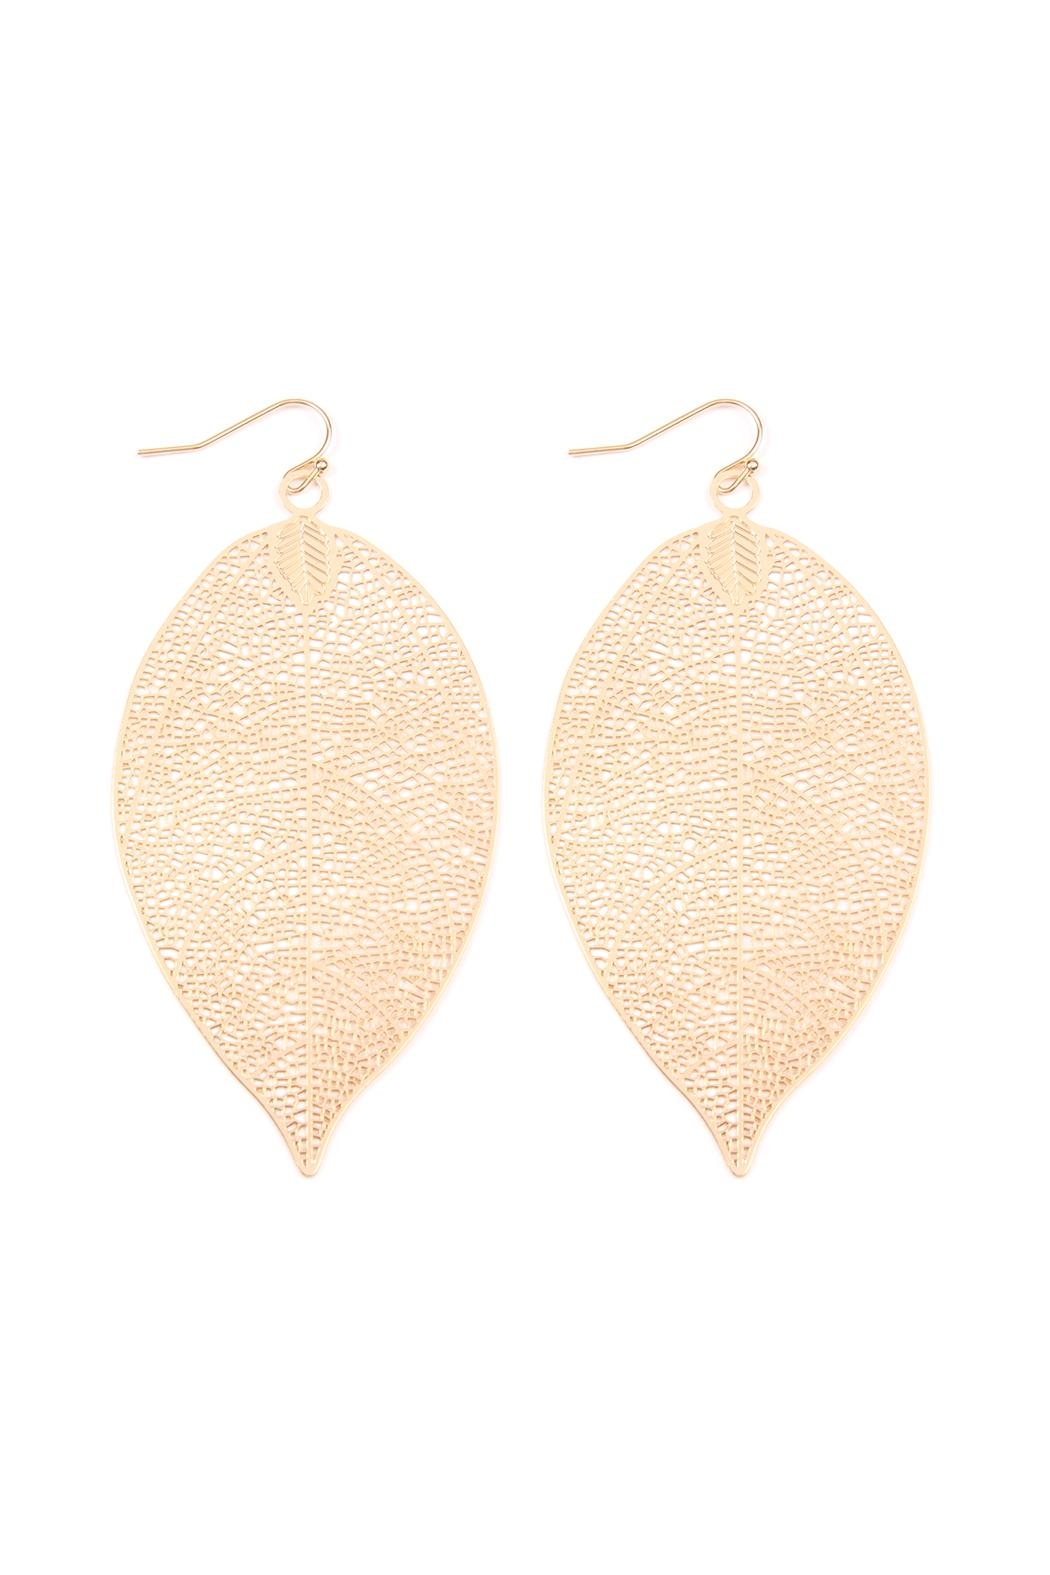 Riah Fashion Dainty-Filigree Leaf-Hook Earrings - Front Cropped Image